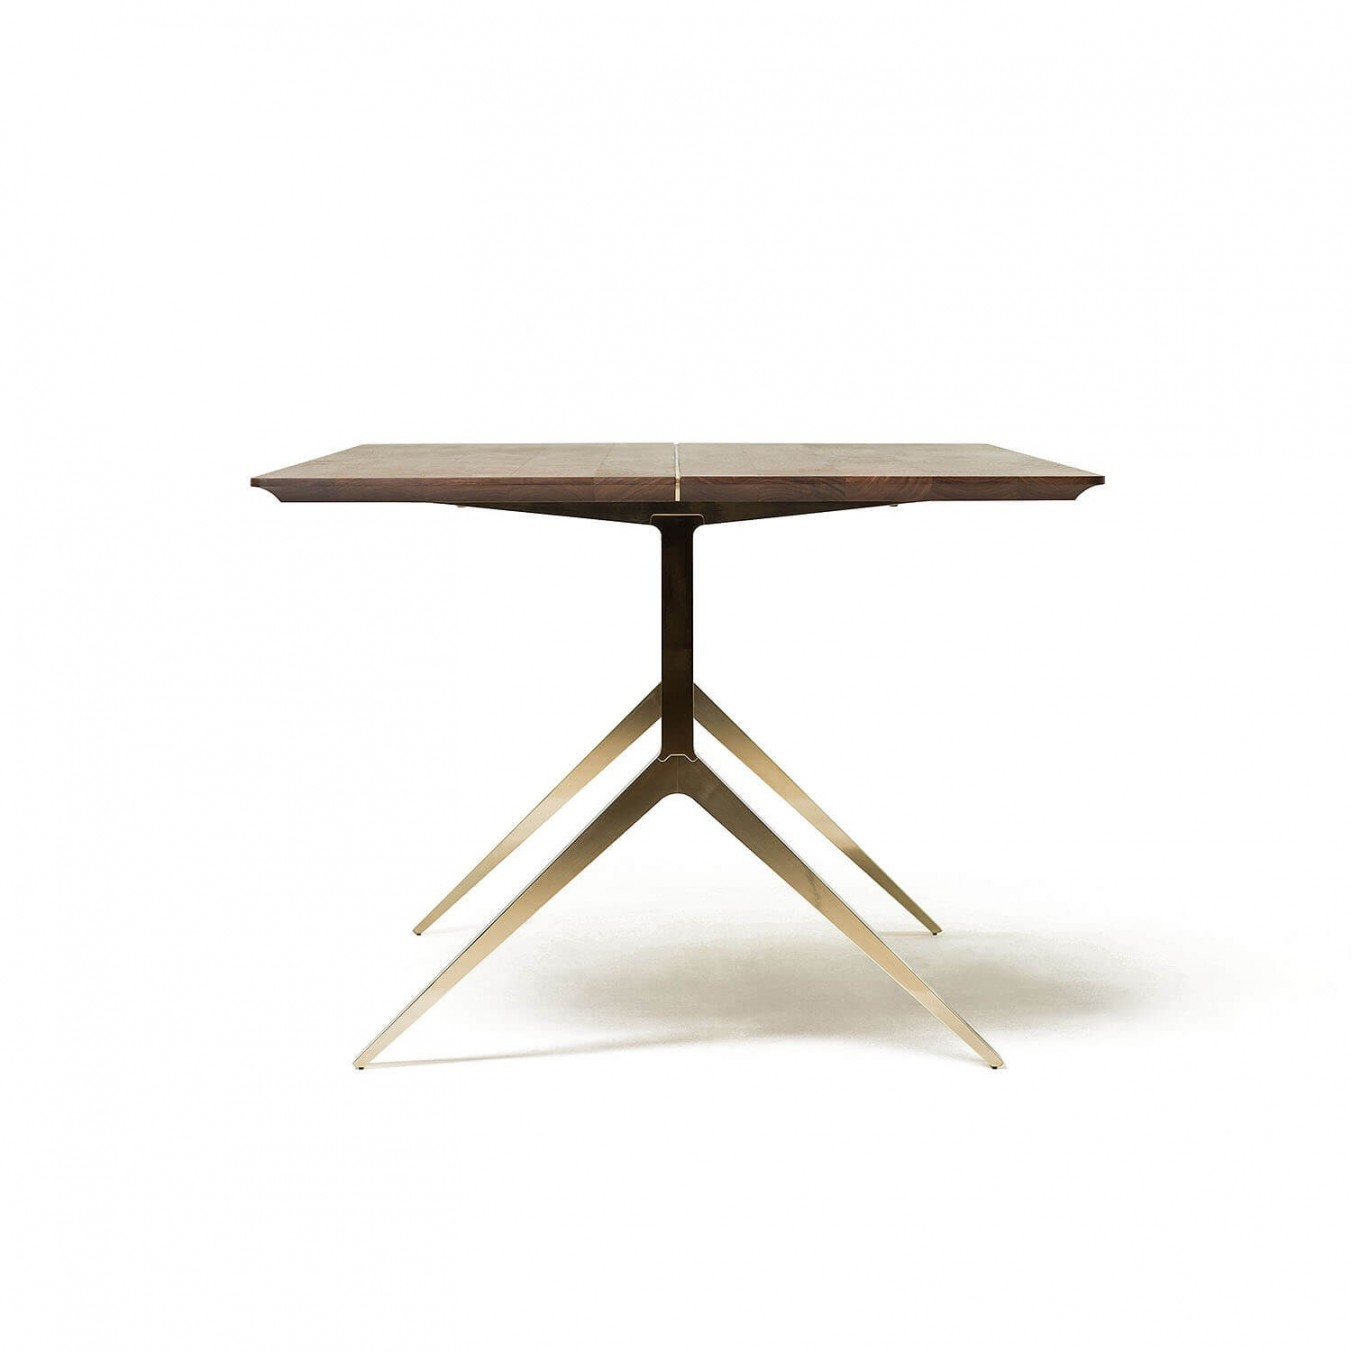 OVERTON TABLE